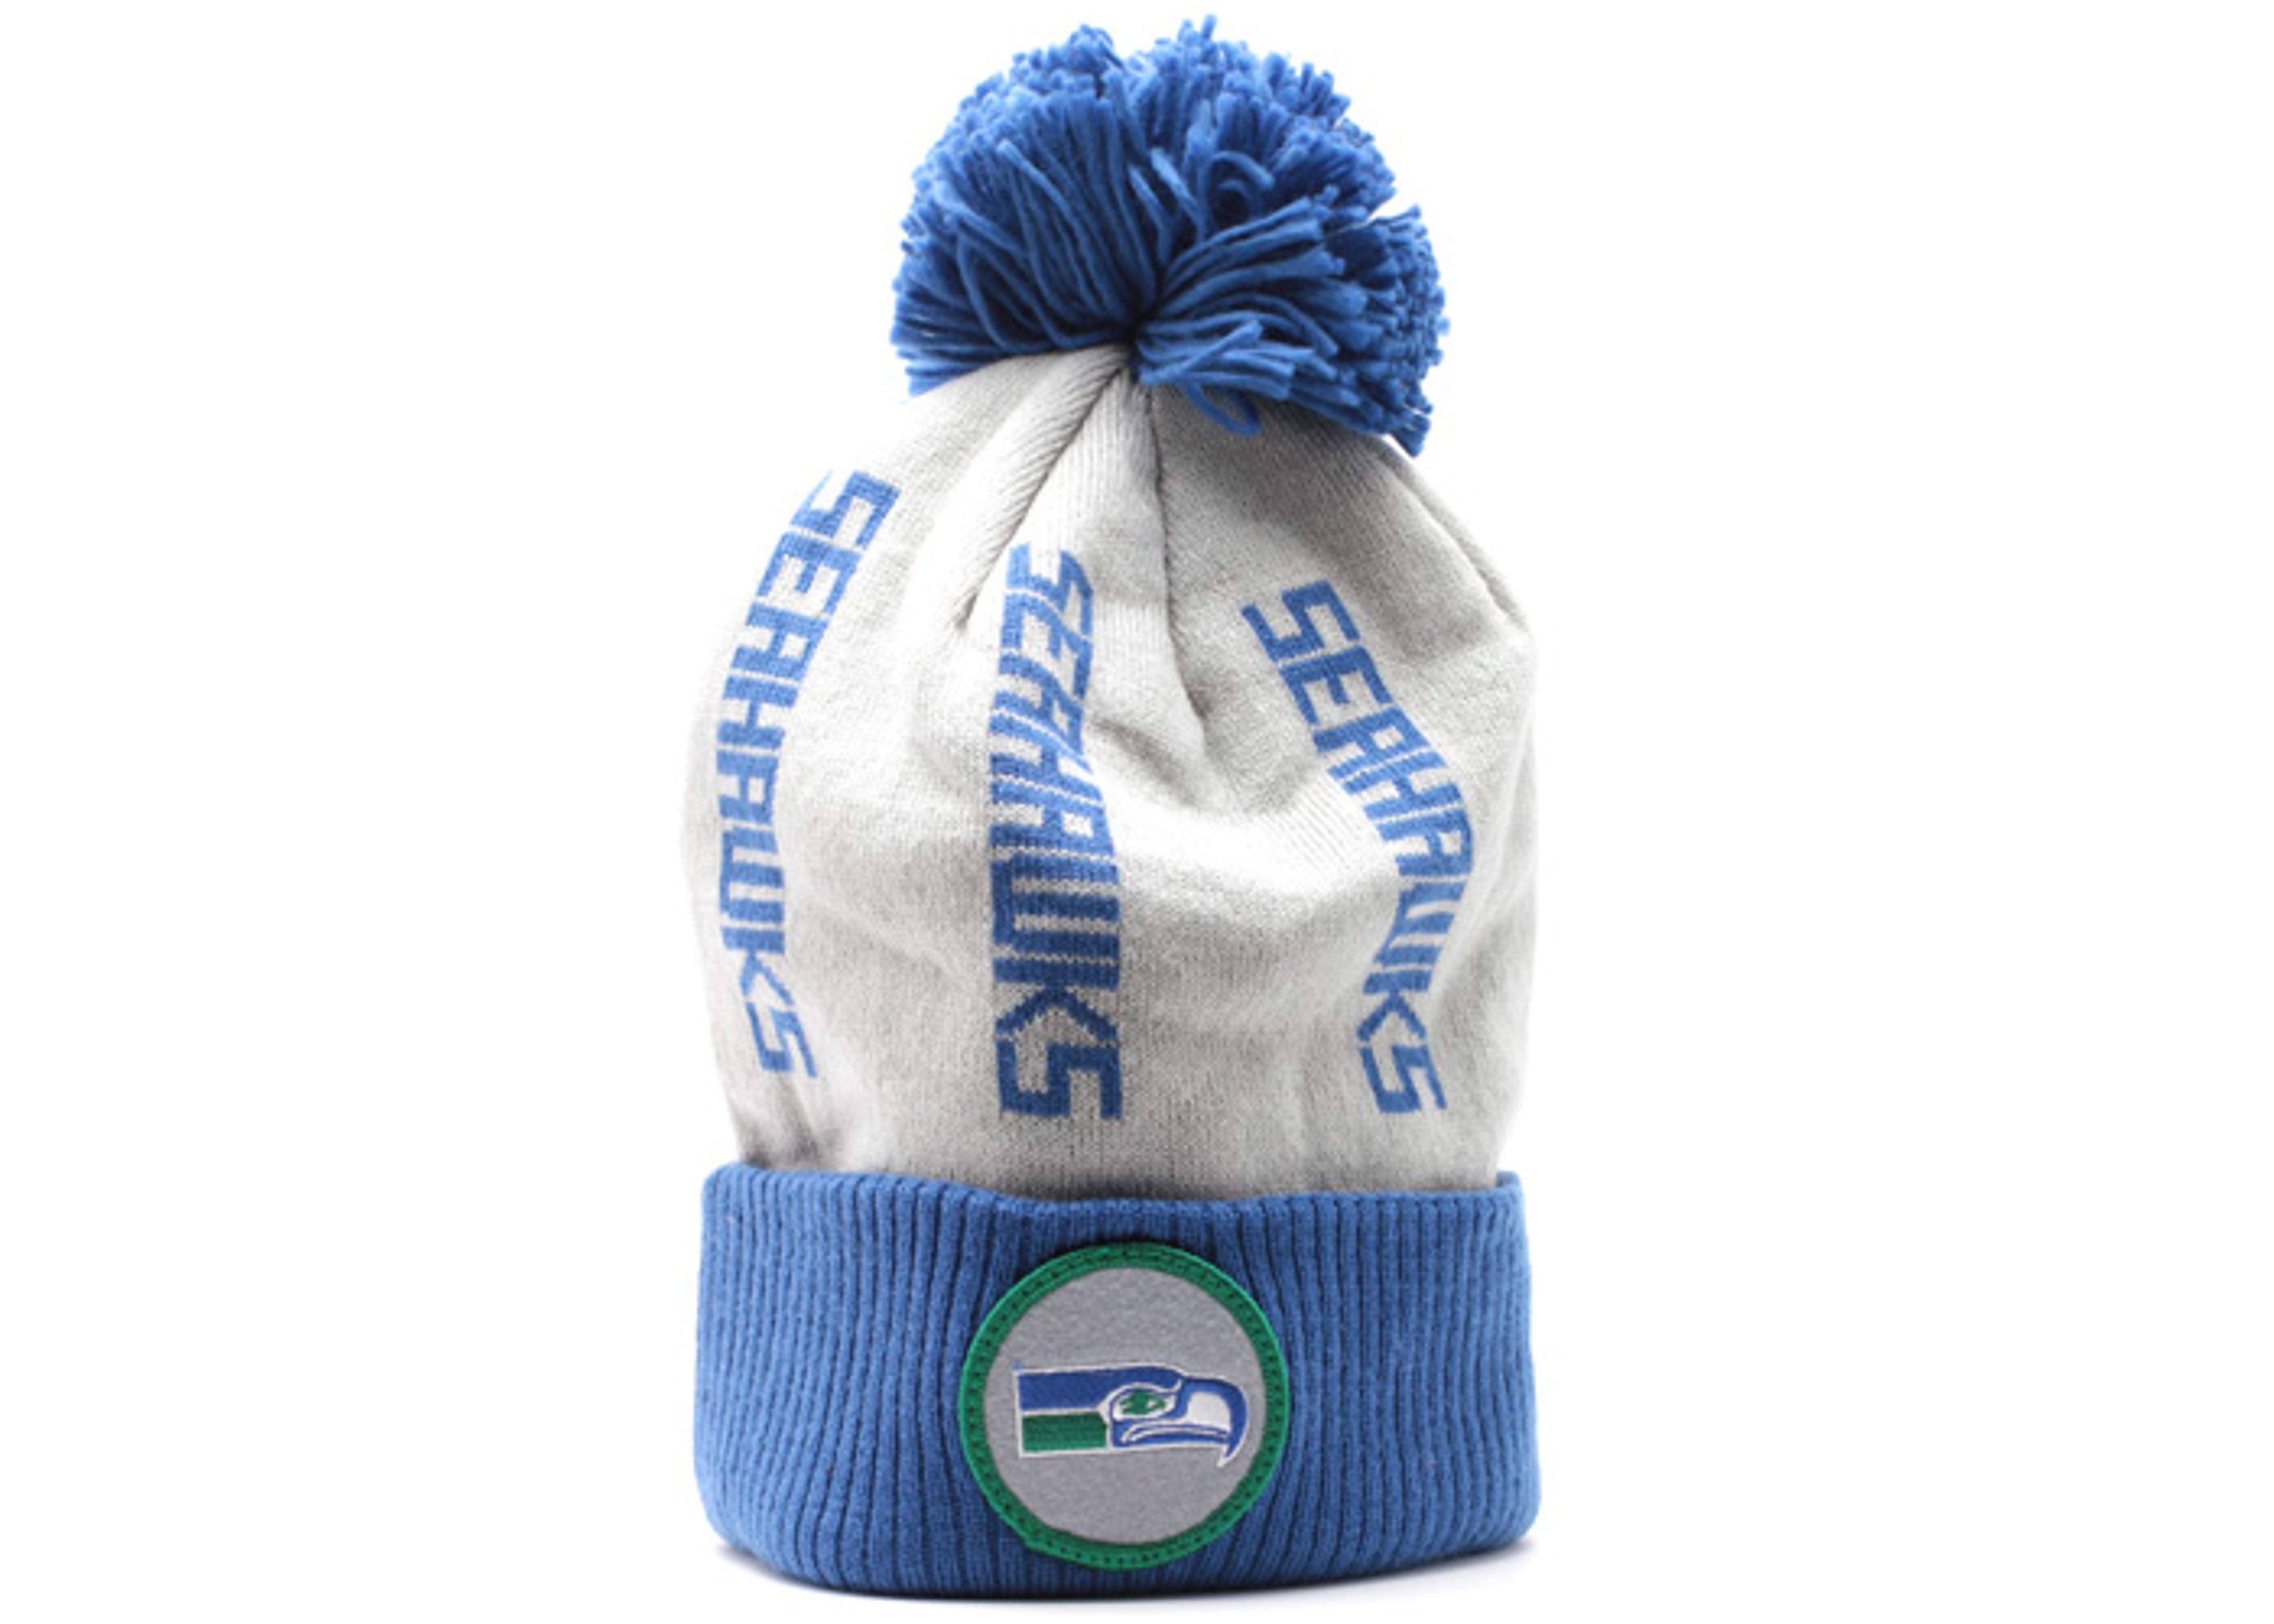 seattle seahawks cuffedpom knit beanie